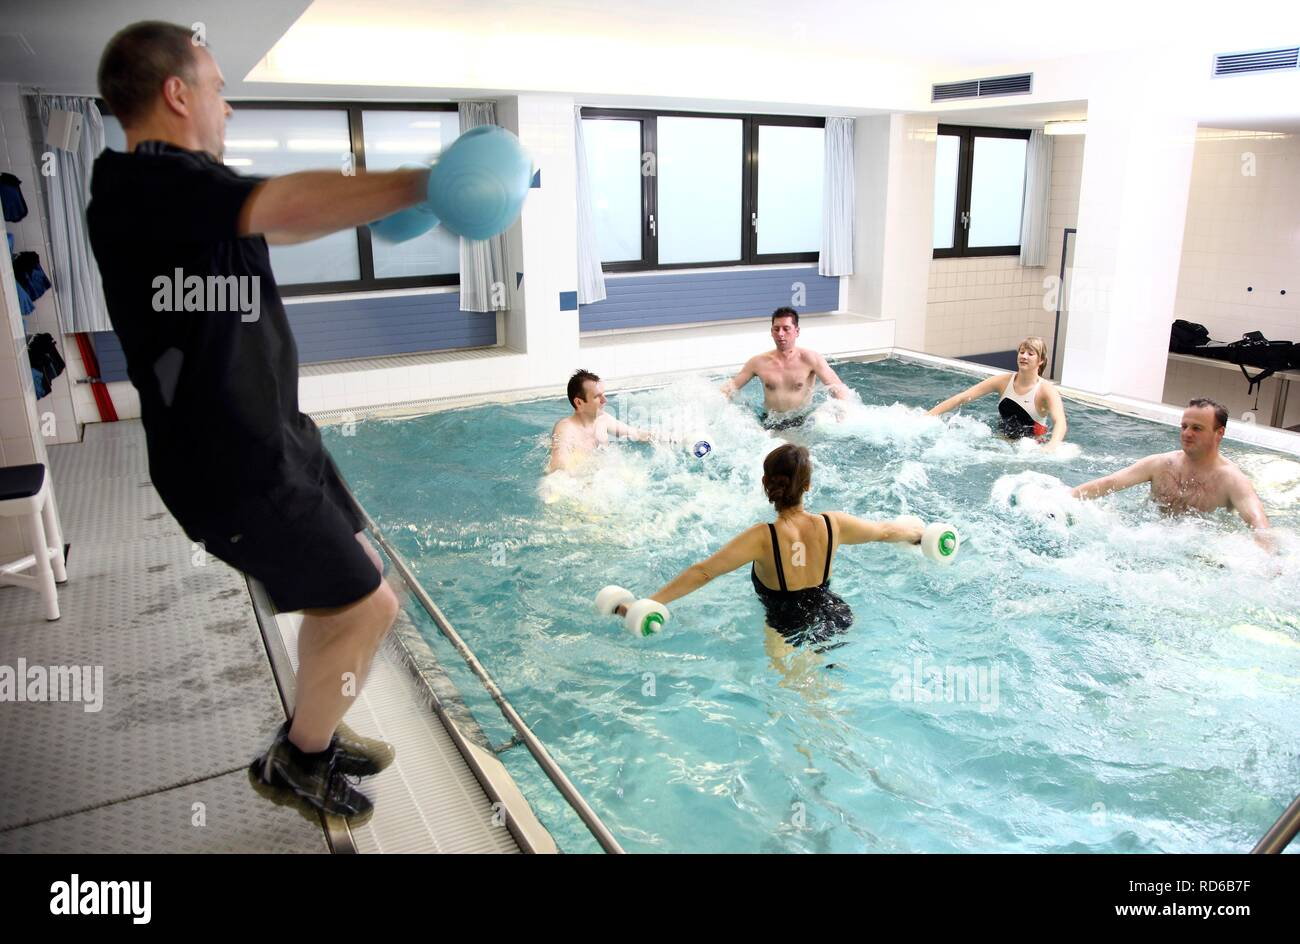 Aqua aerobics, water aerobics, exercise therapy, physiotherapy in water, e.g. as a rehabilitation program - Stock Image